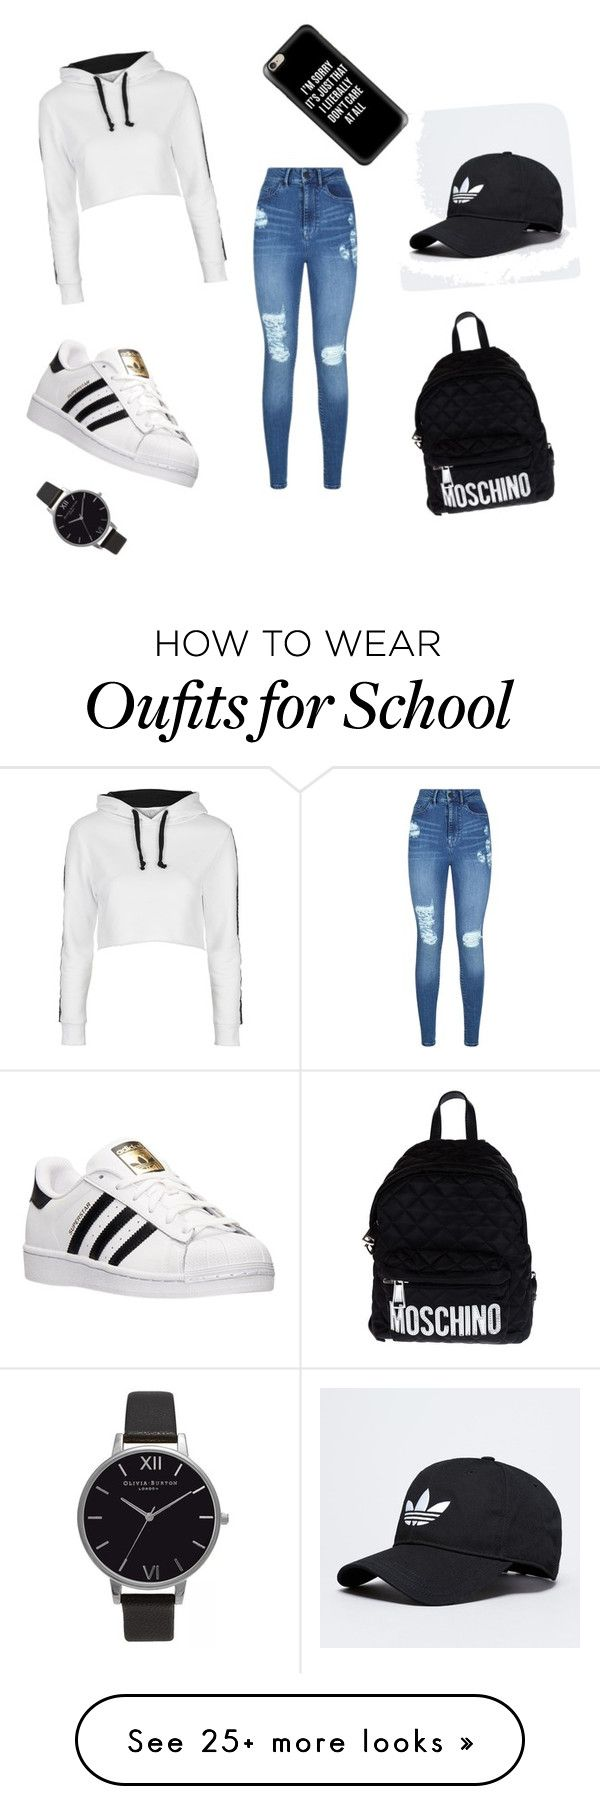 """""""#OOTD for school"""" by luxuriousbaderca on Polyvore featuring Lipsy, Topshop, adidas, Moschino, Casetify and Olivia Burton"""